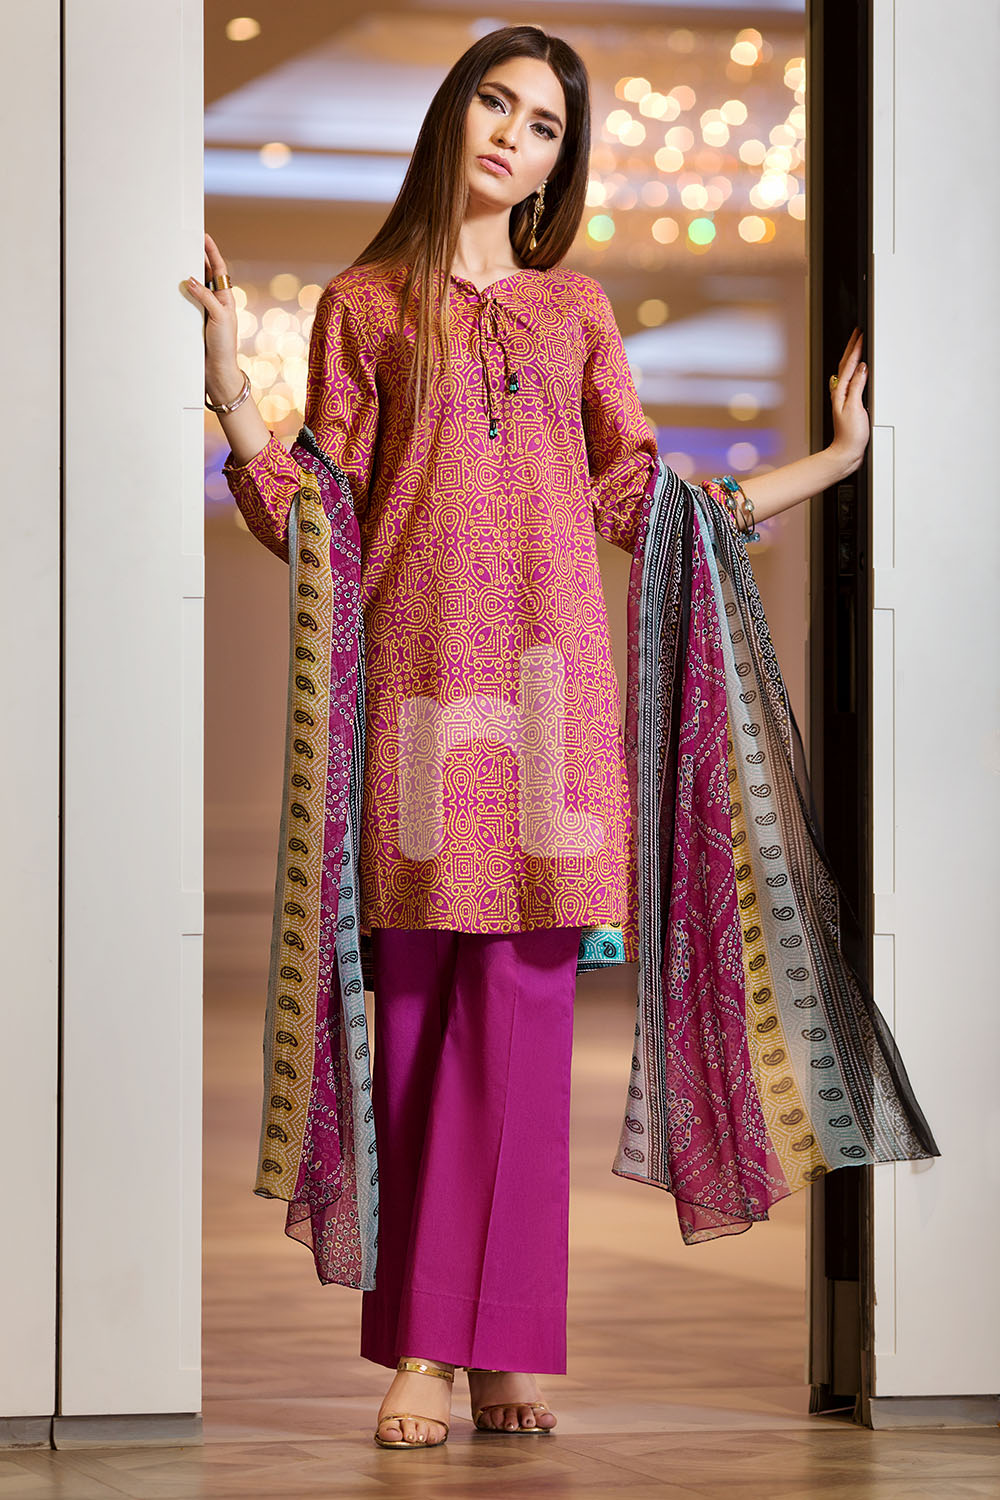 9bd99e1958 3 Piece Embroidered & Printed Lawn Suits- Price 2,800-4,500. Shop@  nishatlinen.com